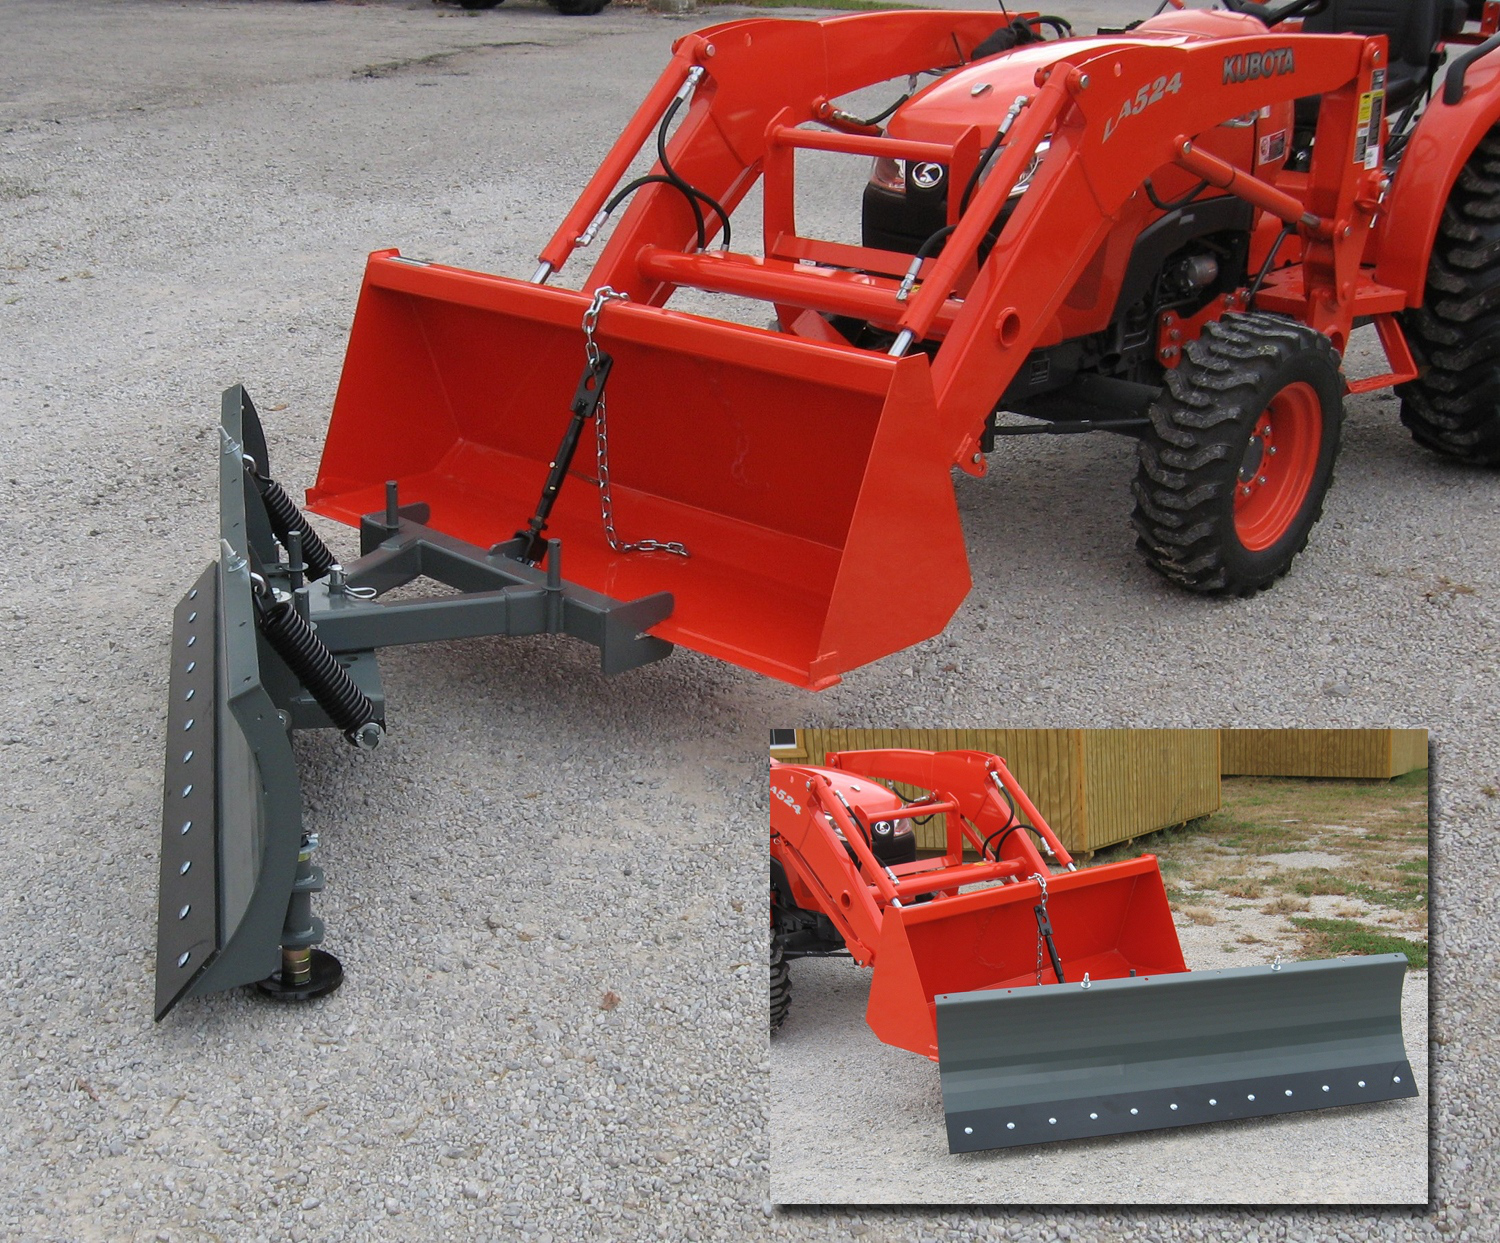 Worksaver Clamp On Snow Blades Install Easily